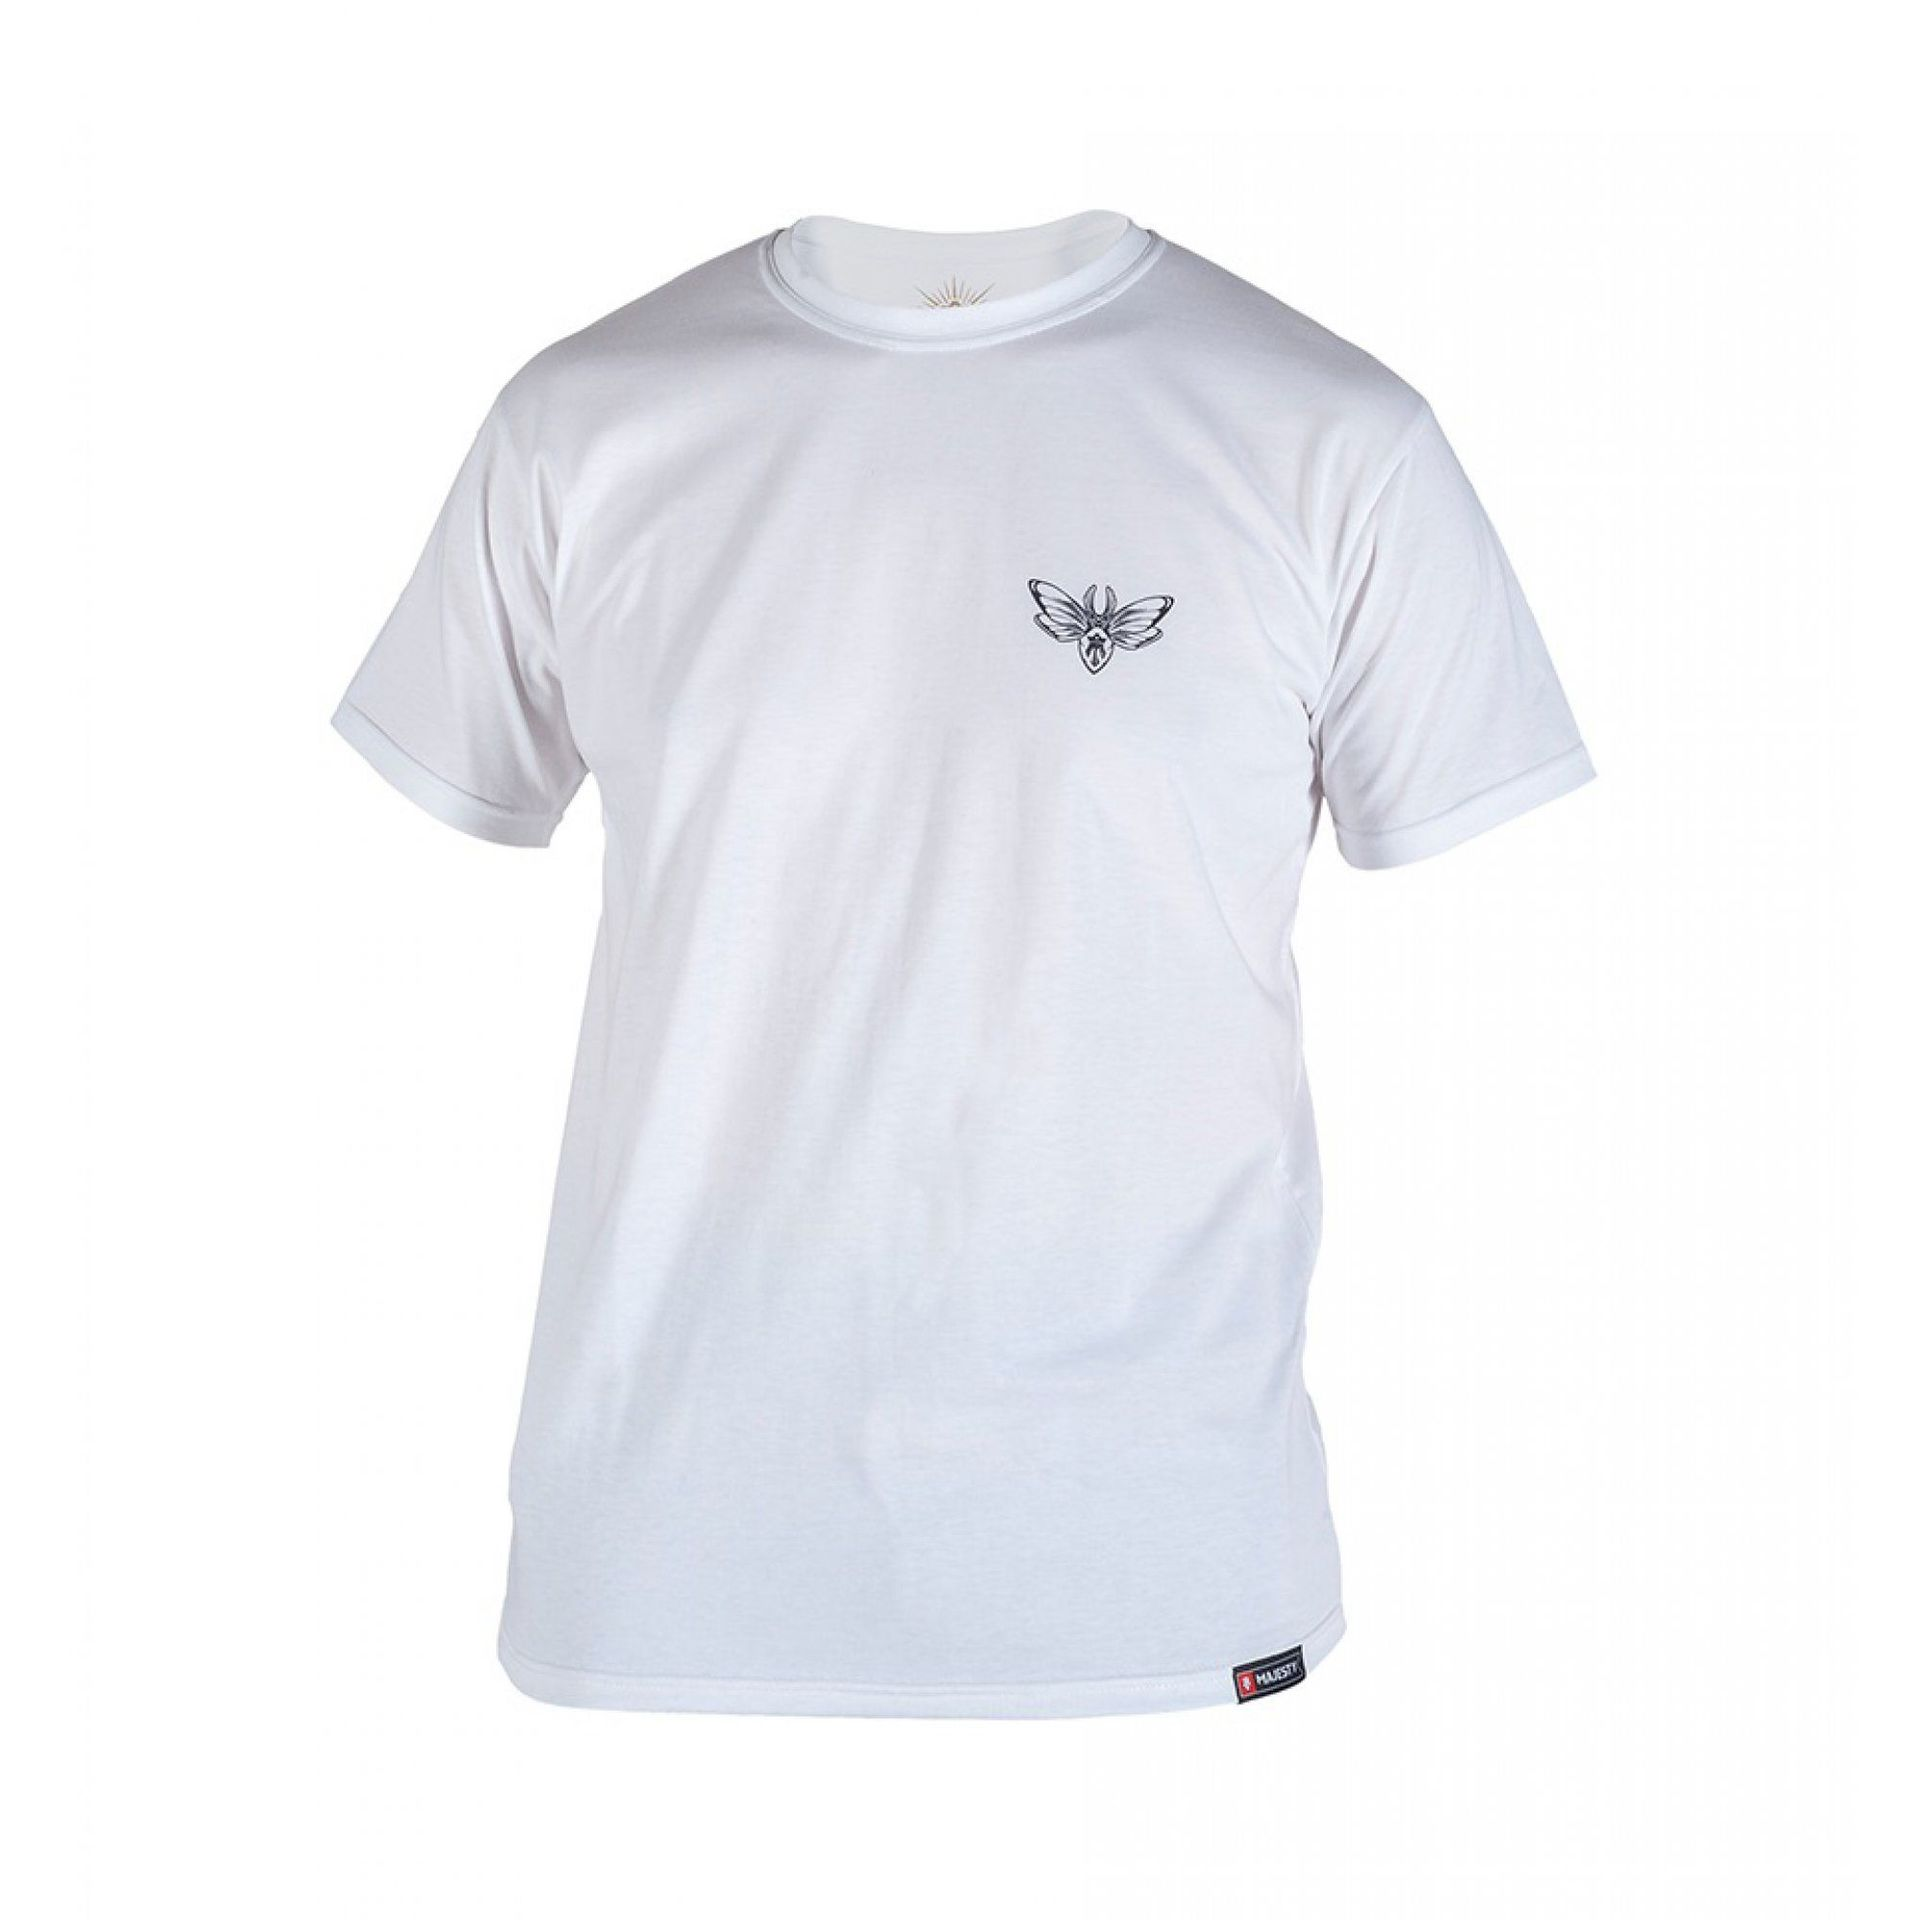 T-SHIRT MAJESTY BIKER WHITE 1